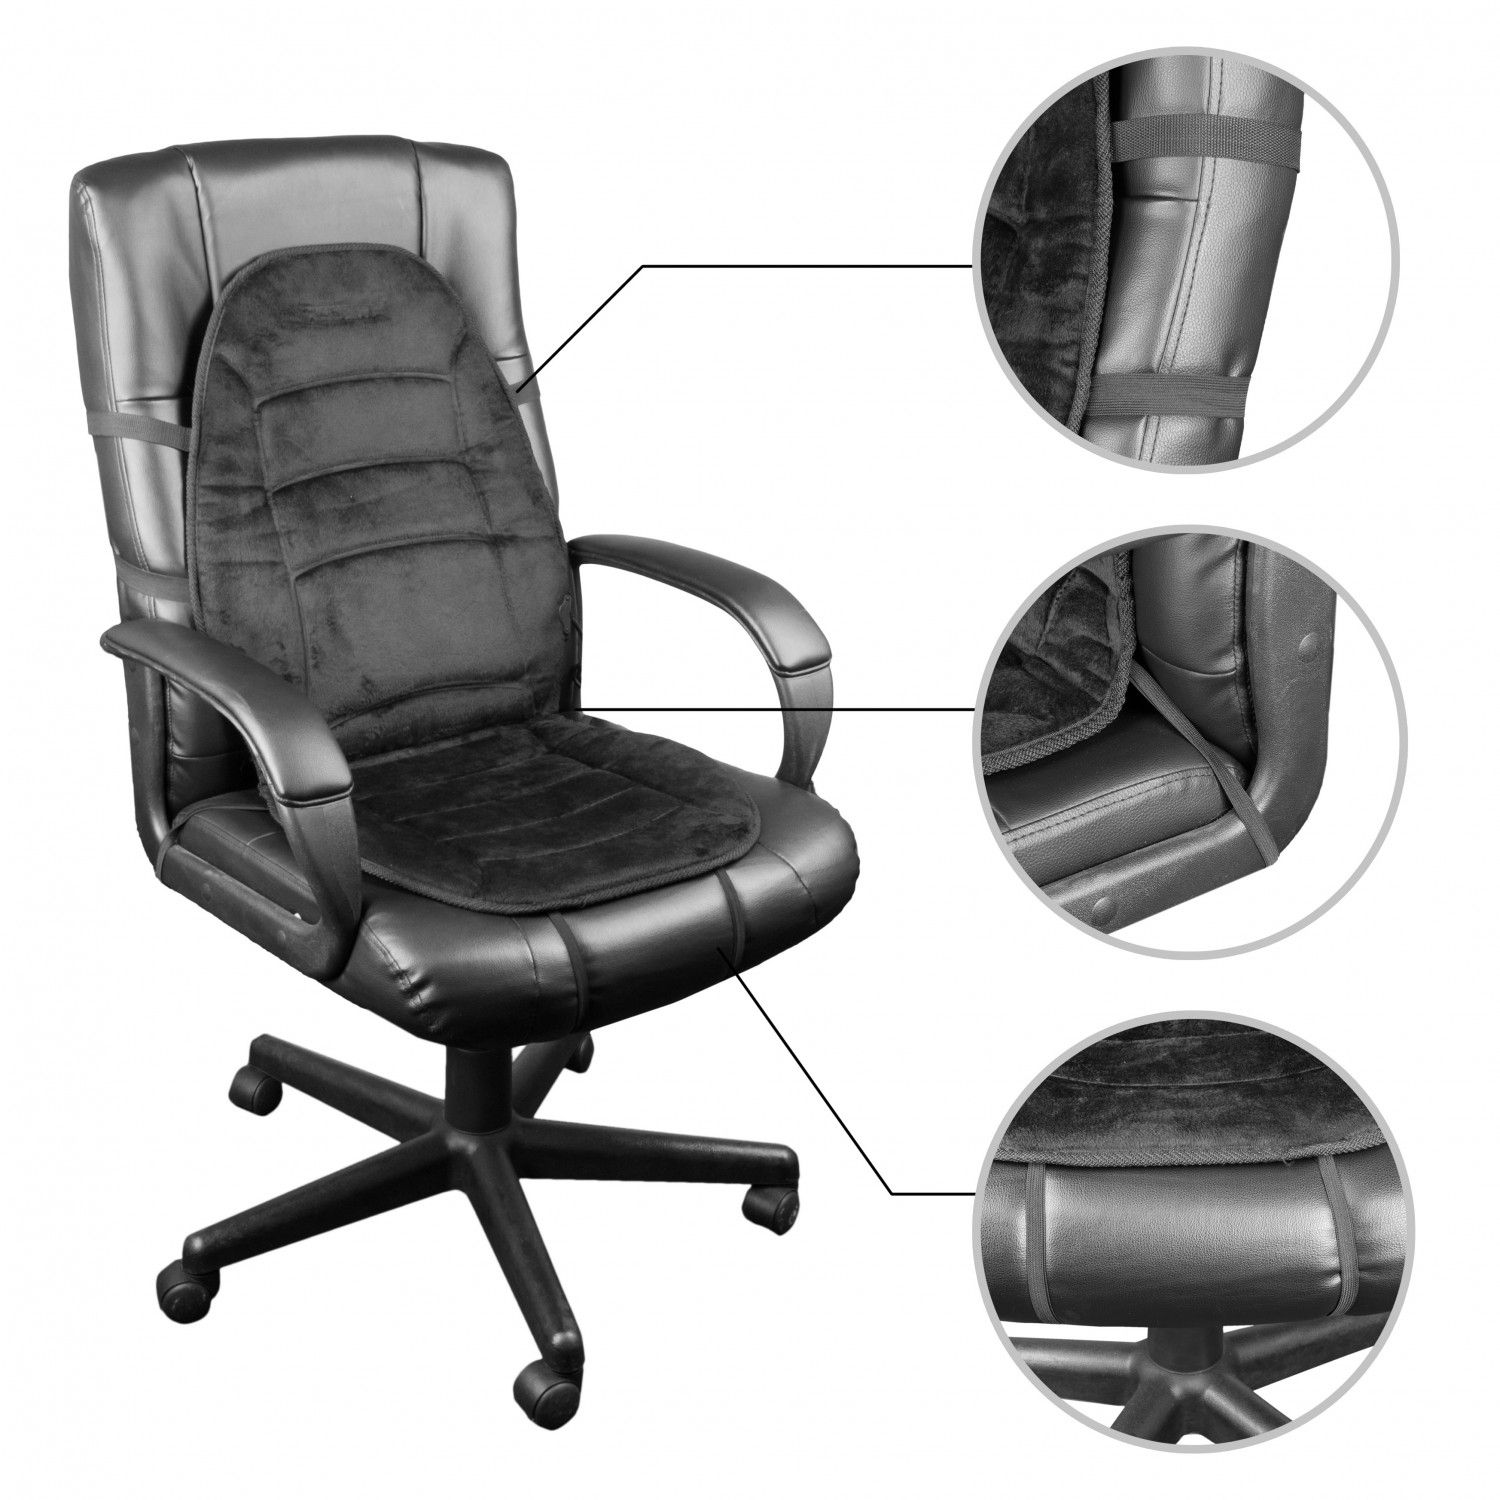 Heated Desk Chair Pad Heated Seat Covers